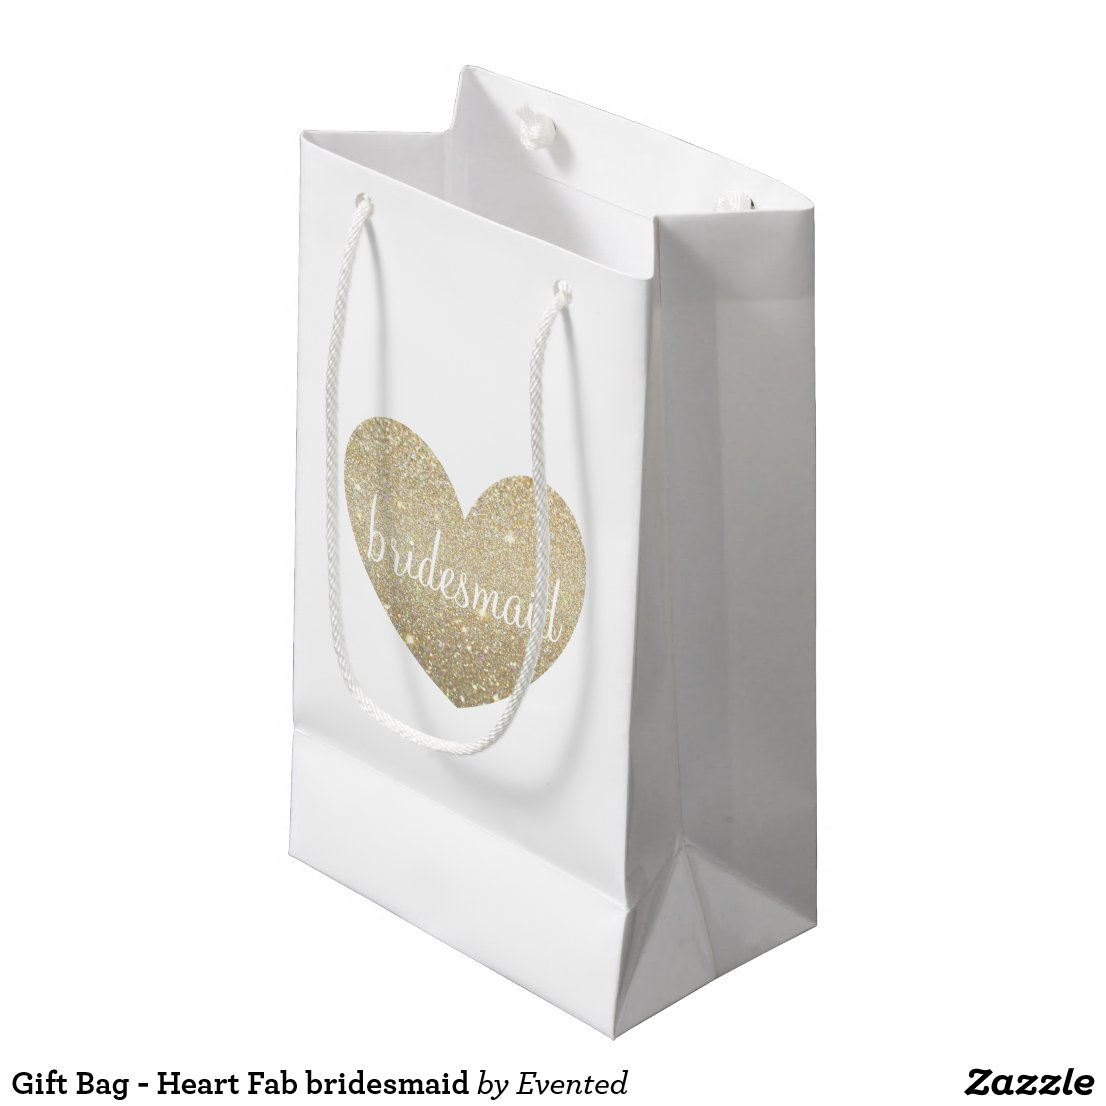 Gift Bag - Heart Fab bridesmaid